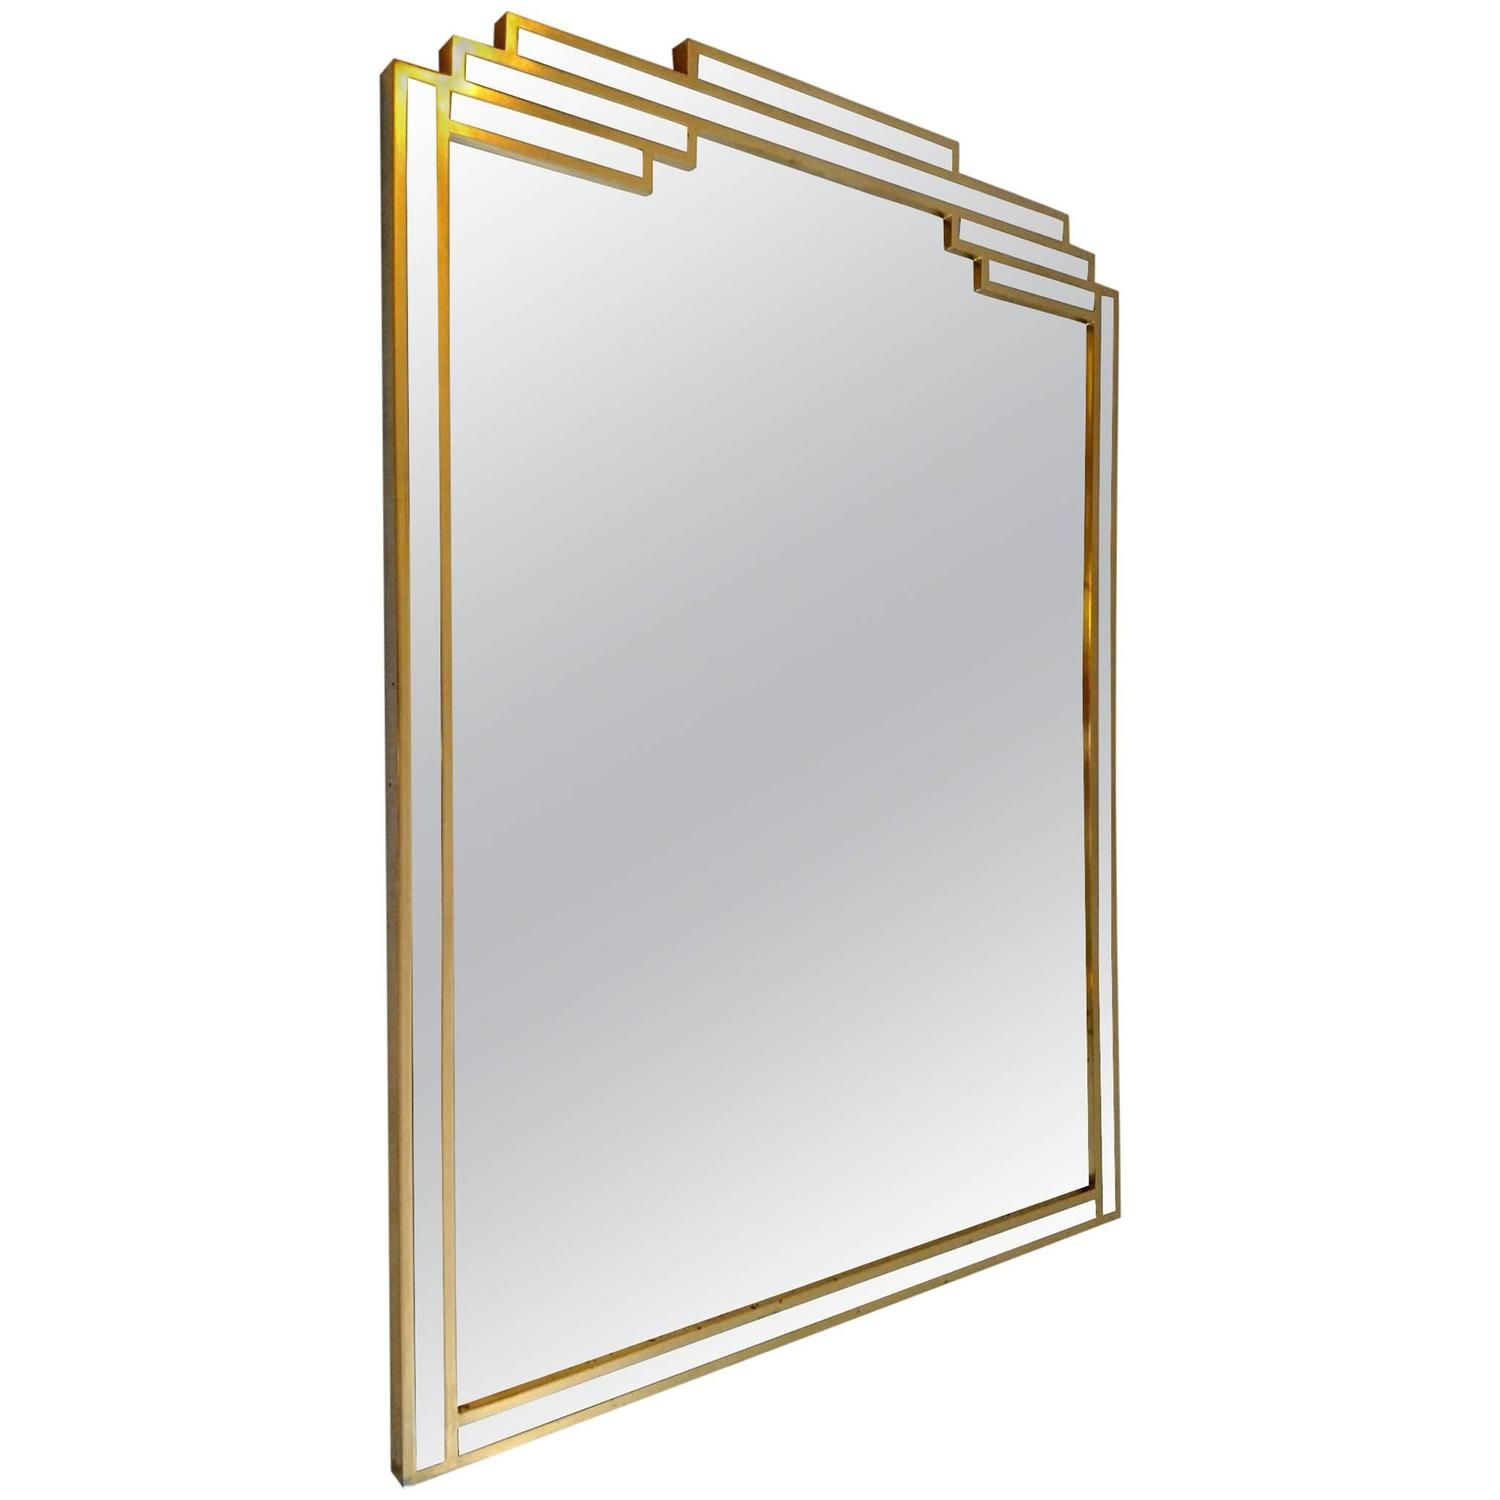 Art Deco Style Mirror Large Art Deco Style Mirror In Gilded Wood Made In Belgium